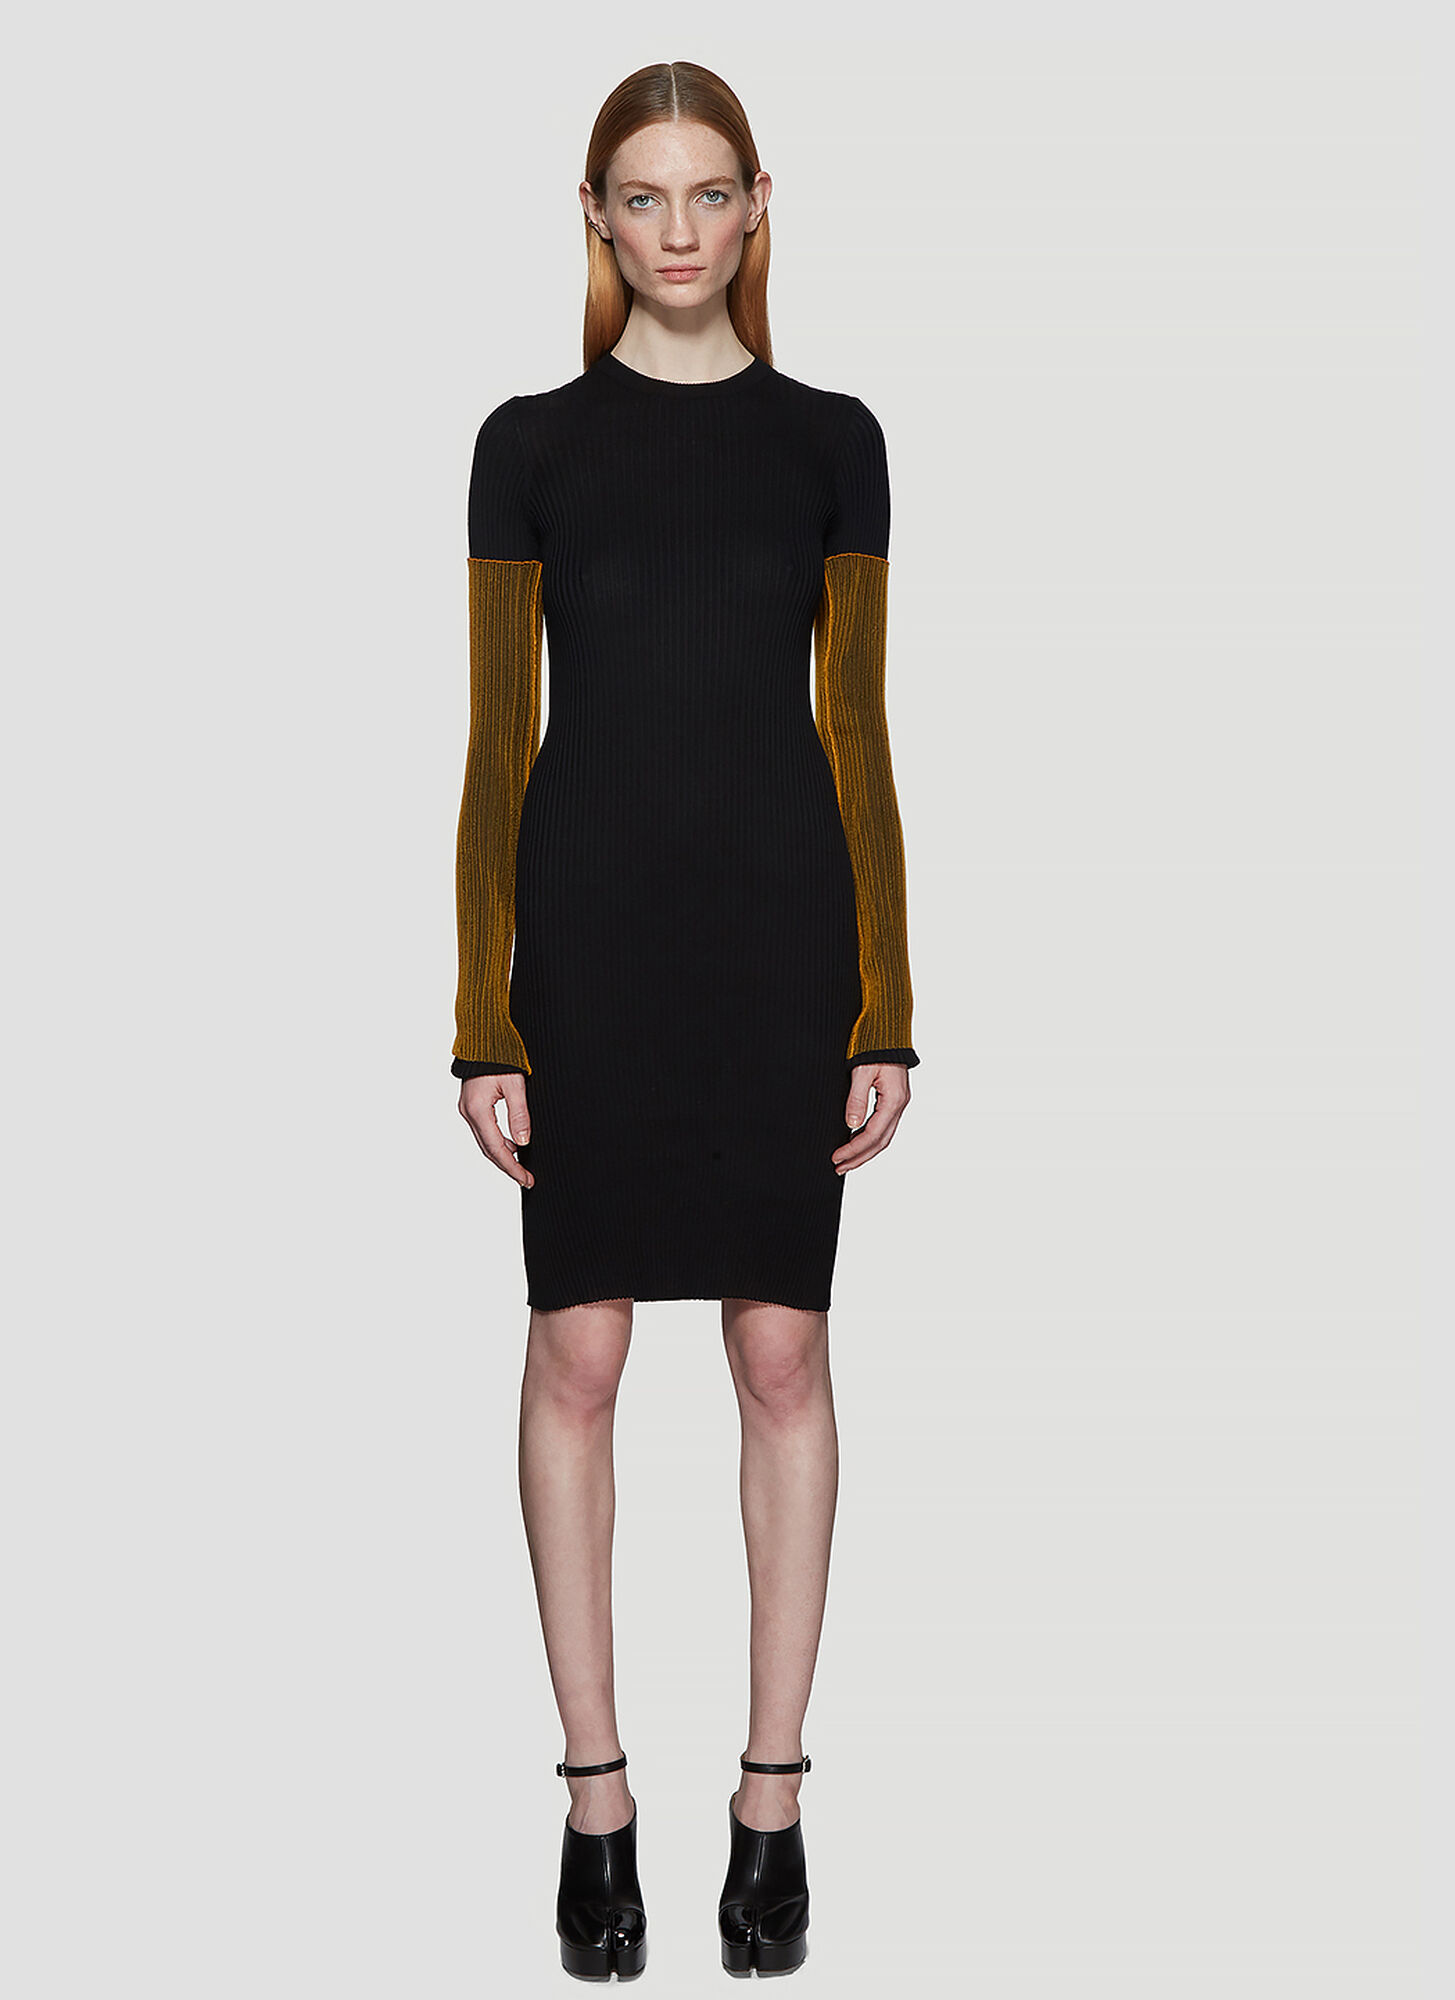 Maison Margiela Ribbed Knit Orange Sleeve Dress in Black